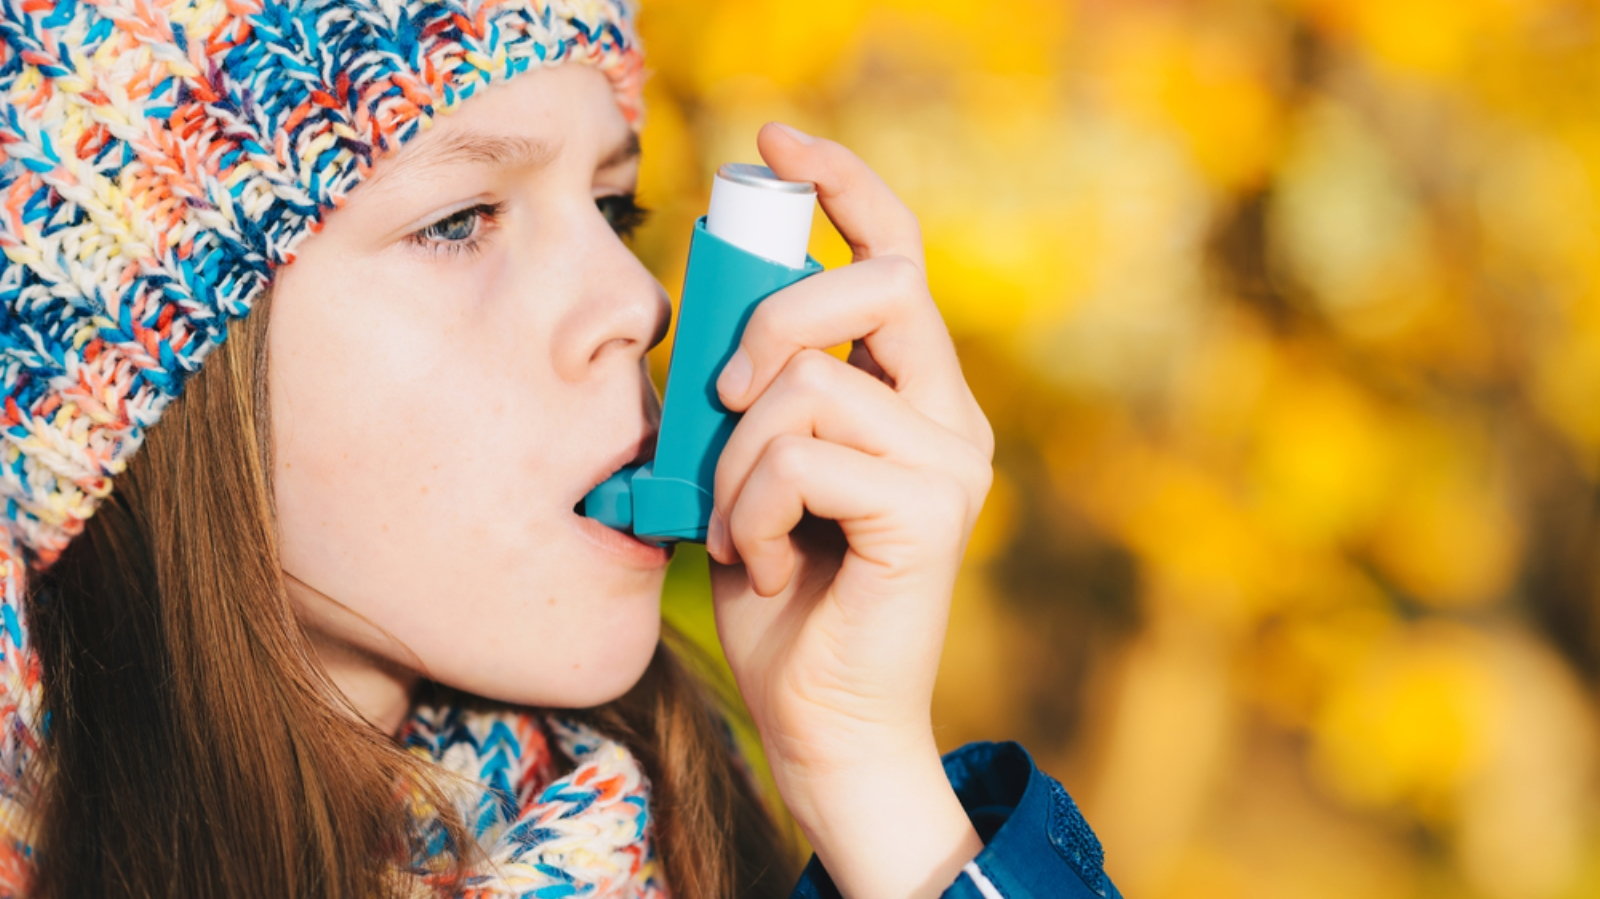 Compound In Cannabis Could Ease Asthma Israel21c